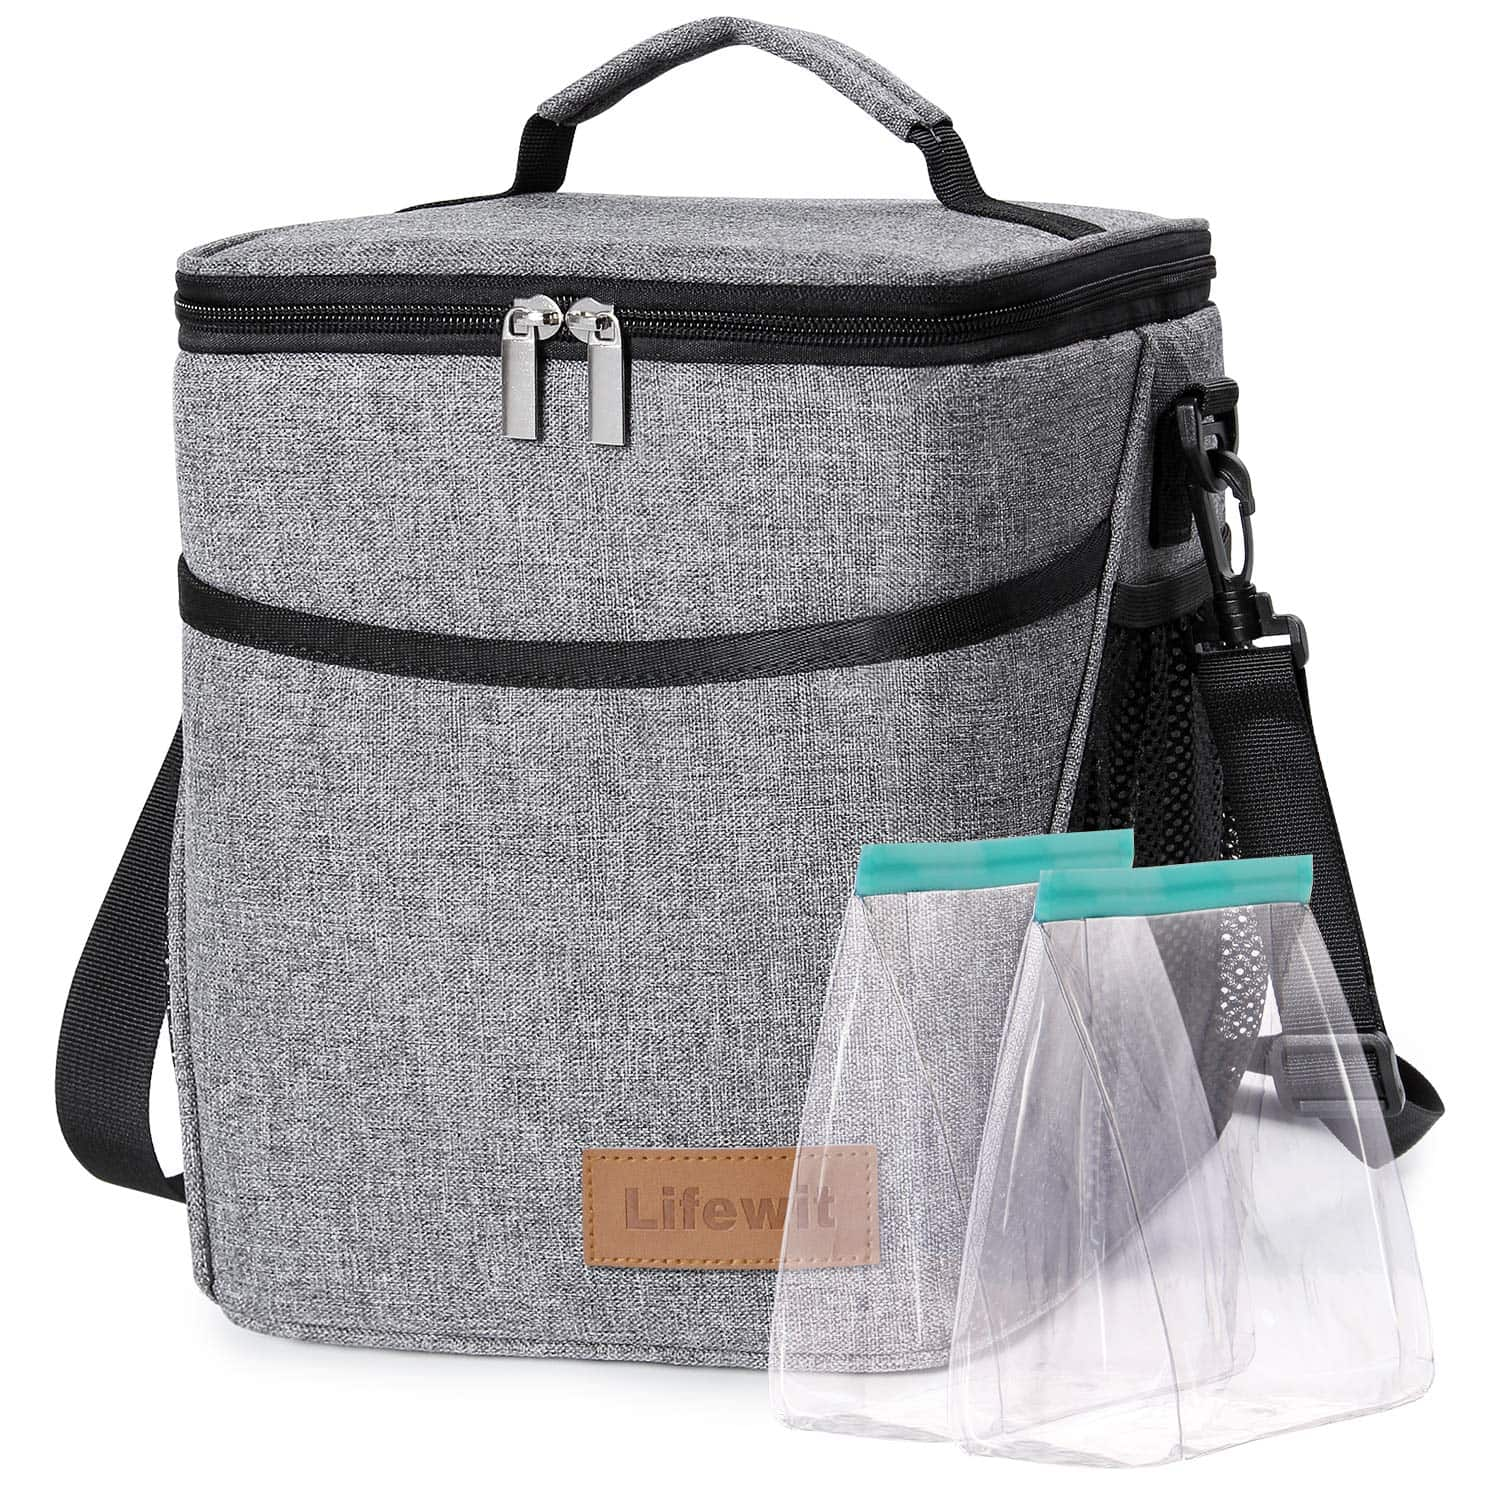 Amazon: 9L Lunch Box for Adult Insulated Large Lunch Bag Leakproof Thermal Bento Bag (Grey) $9.85 Free Shipping.